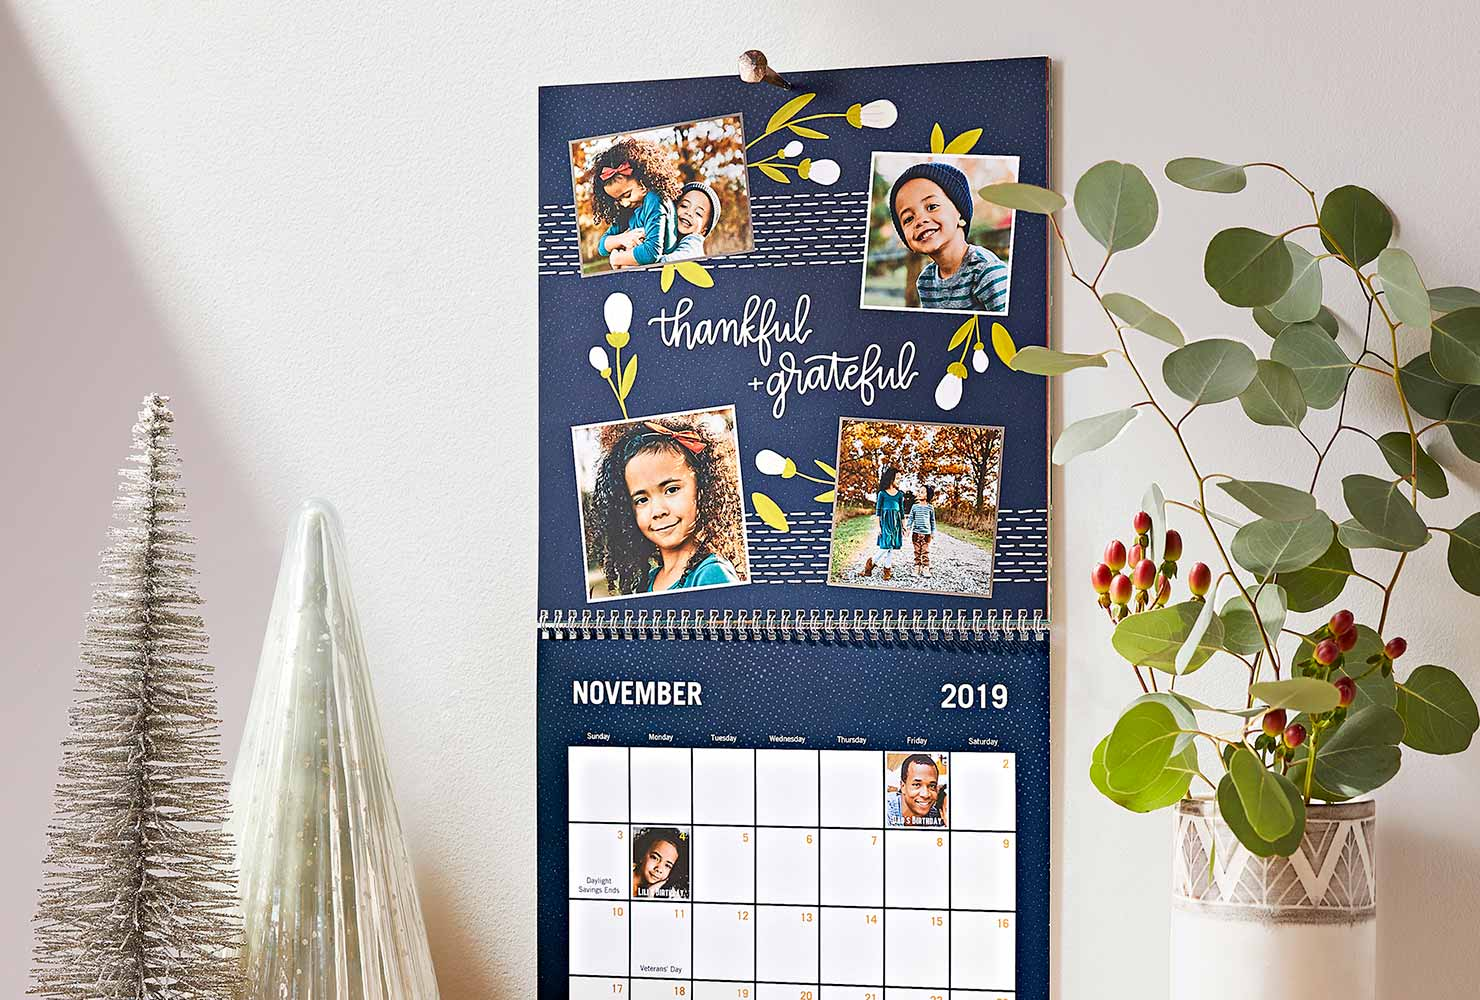 Wall calendar with photos of young girl with holiday home decor